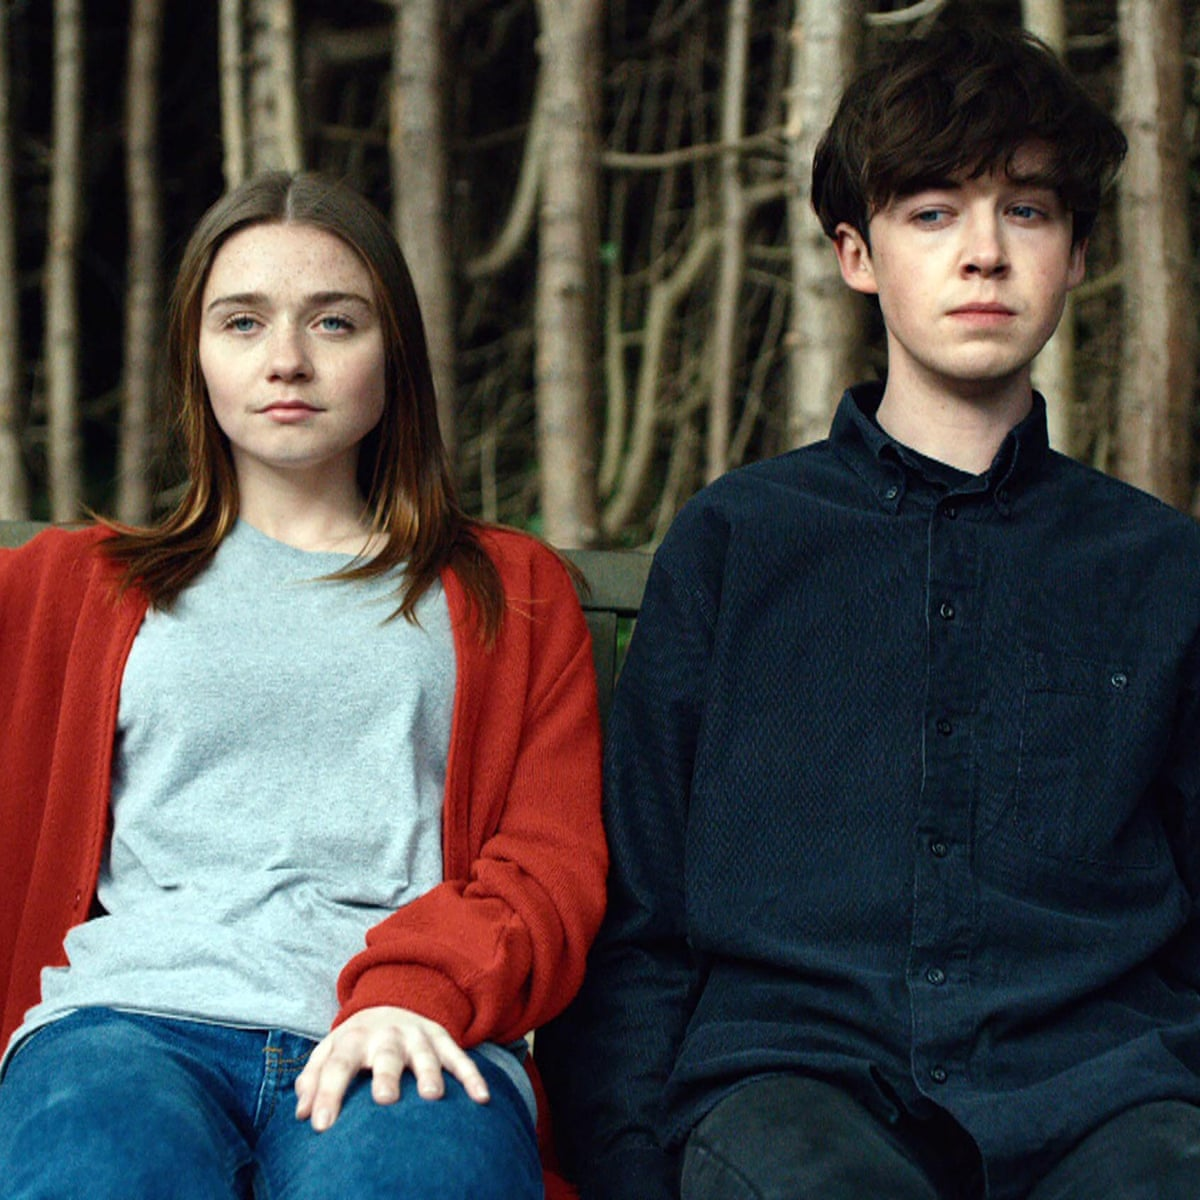 The End of the F***ing World 2017 Web/TV Series Watch on Netflix